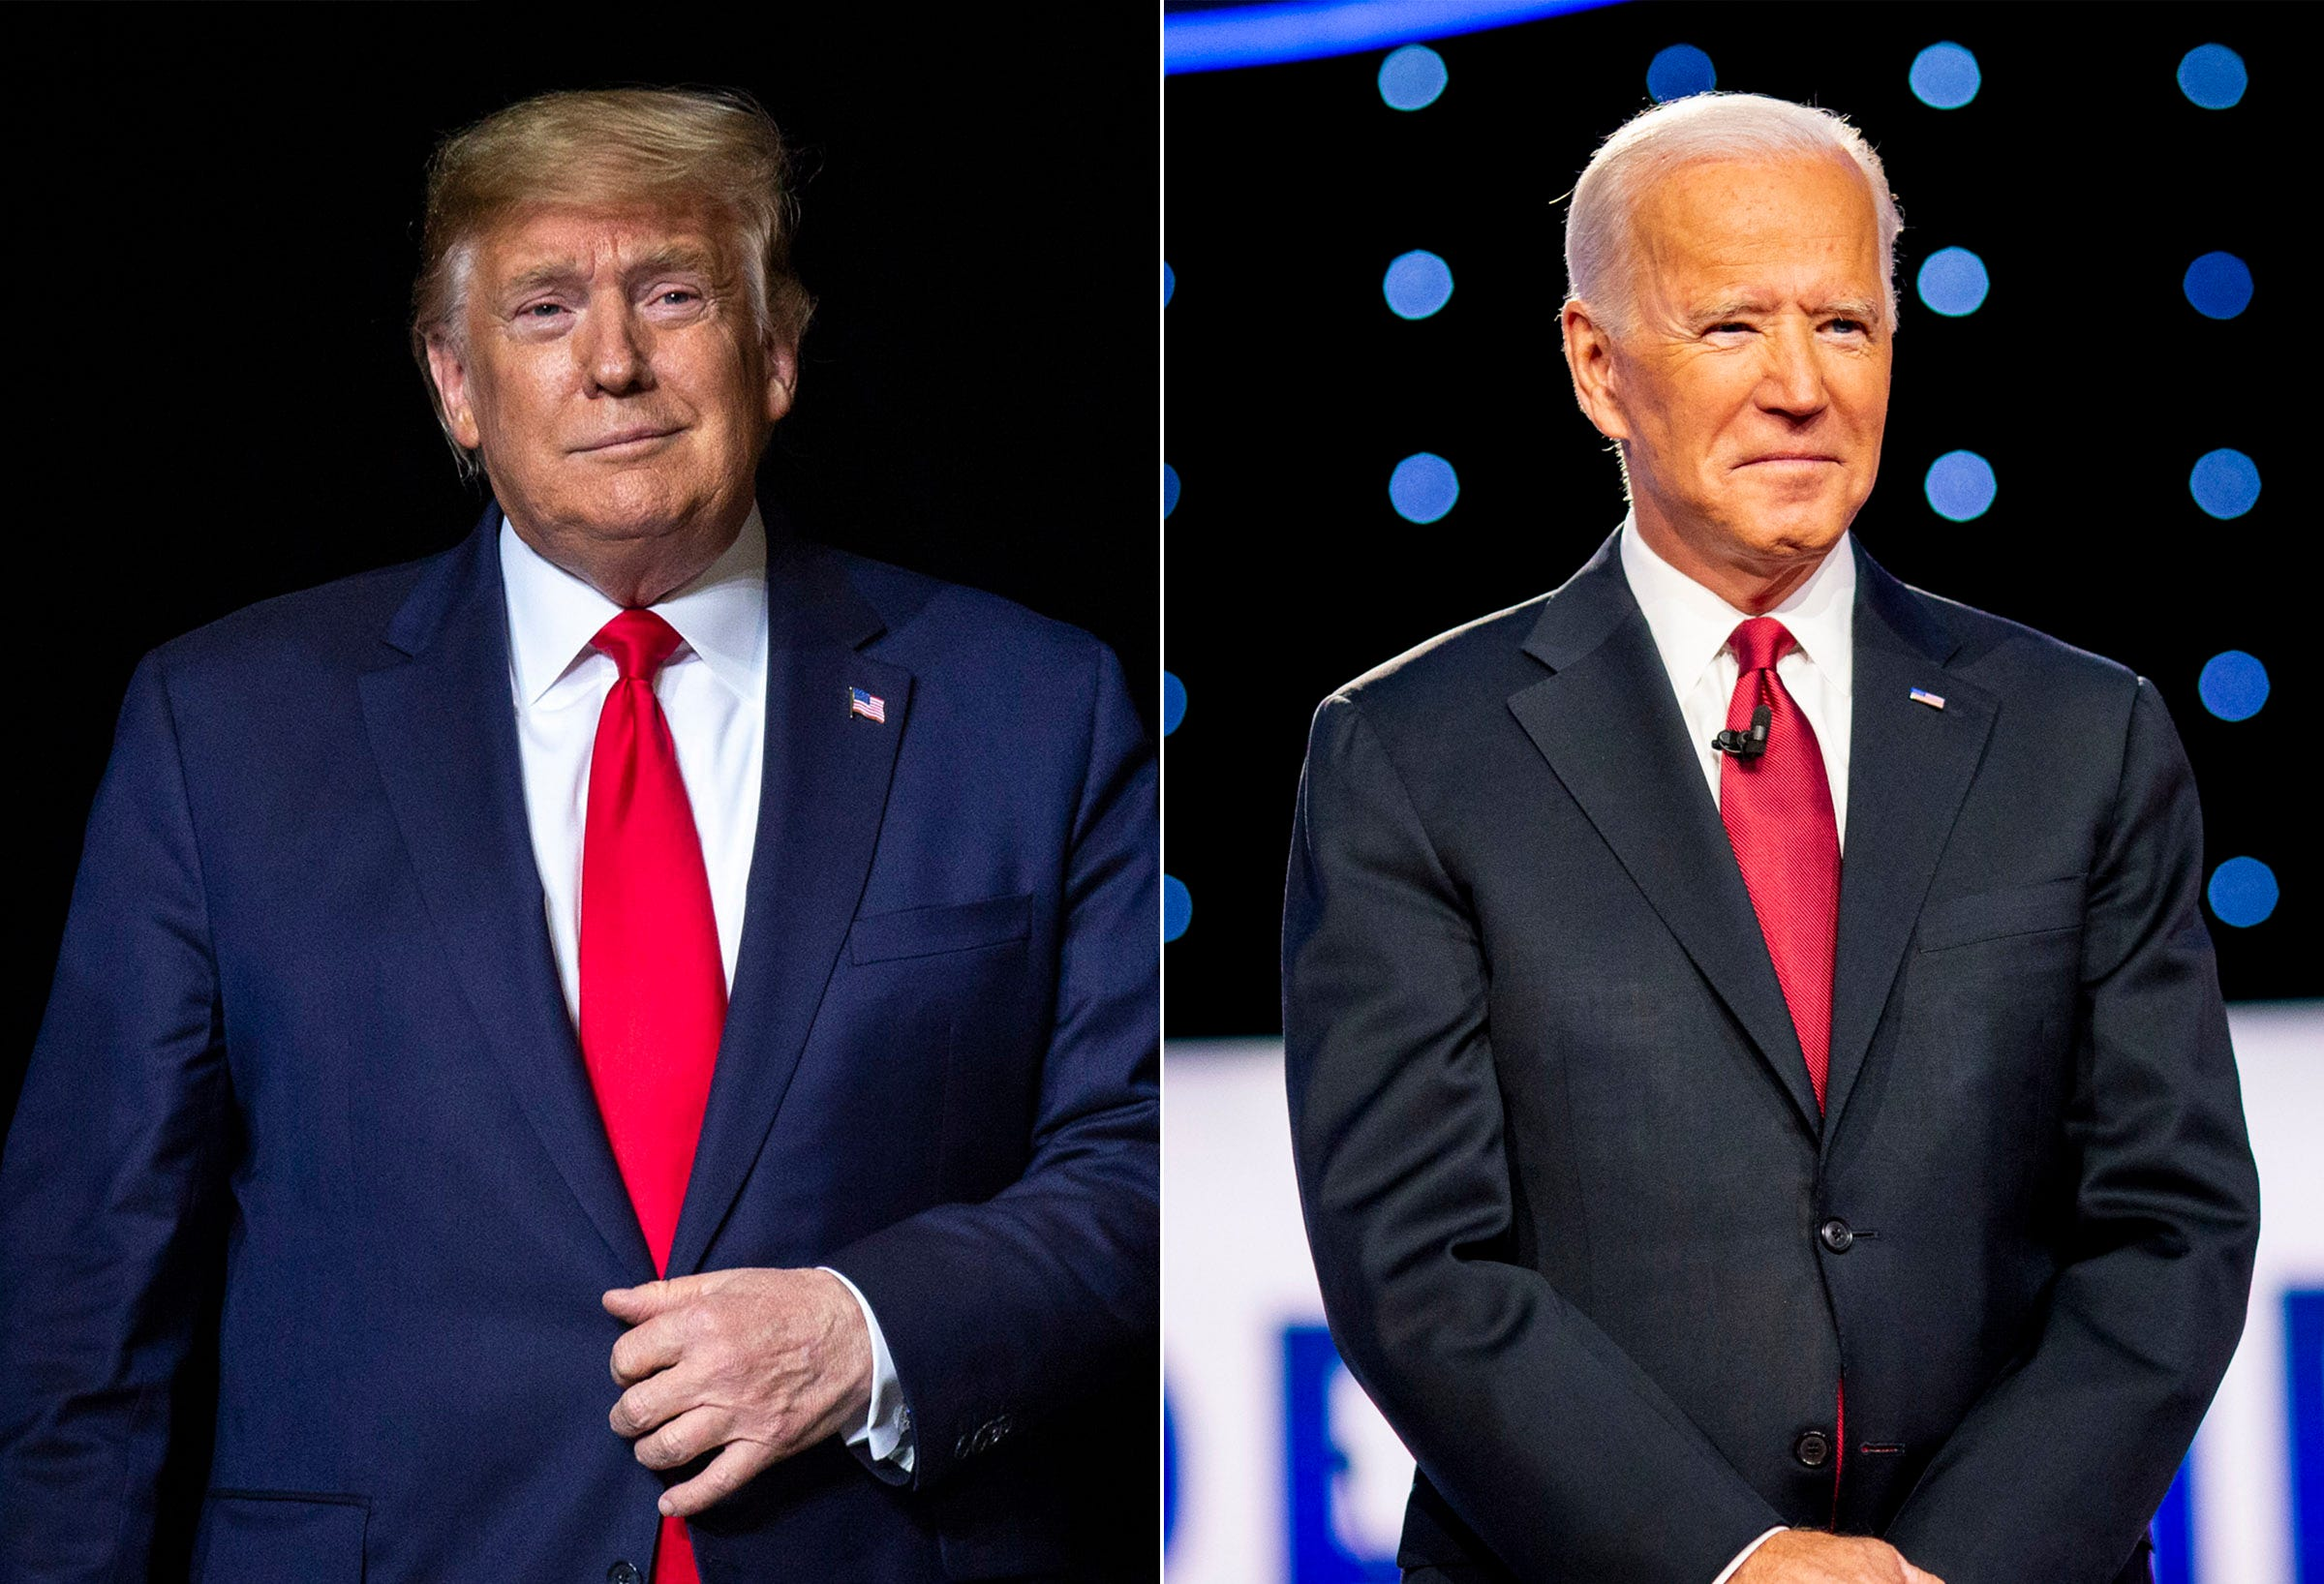 Poll More Pick Trump Over Joe Biden To Win Presidential Debates